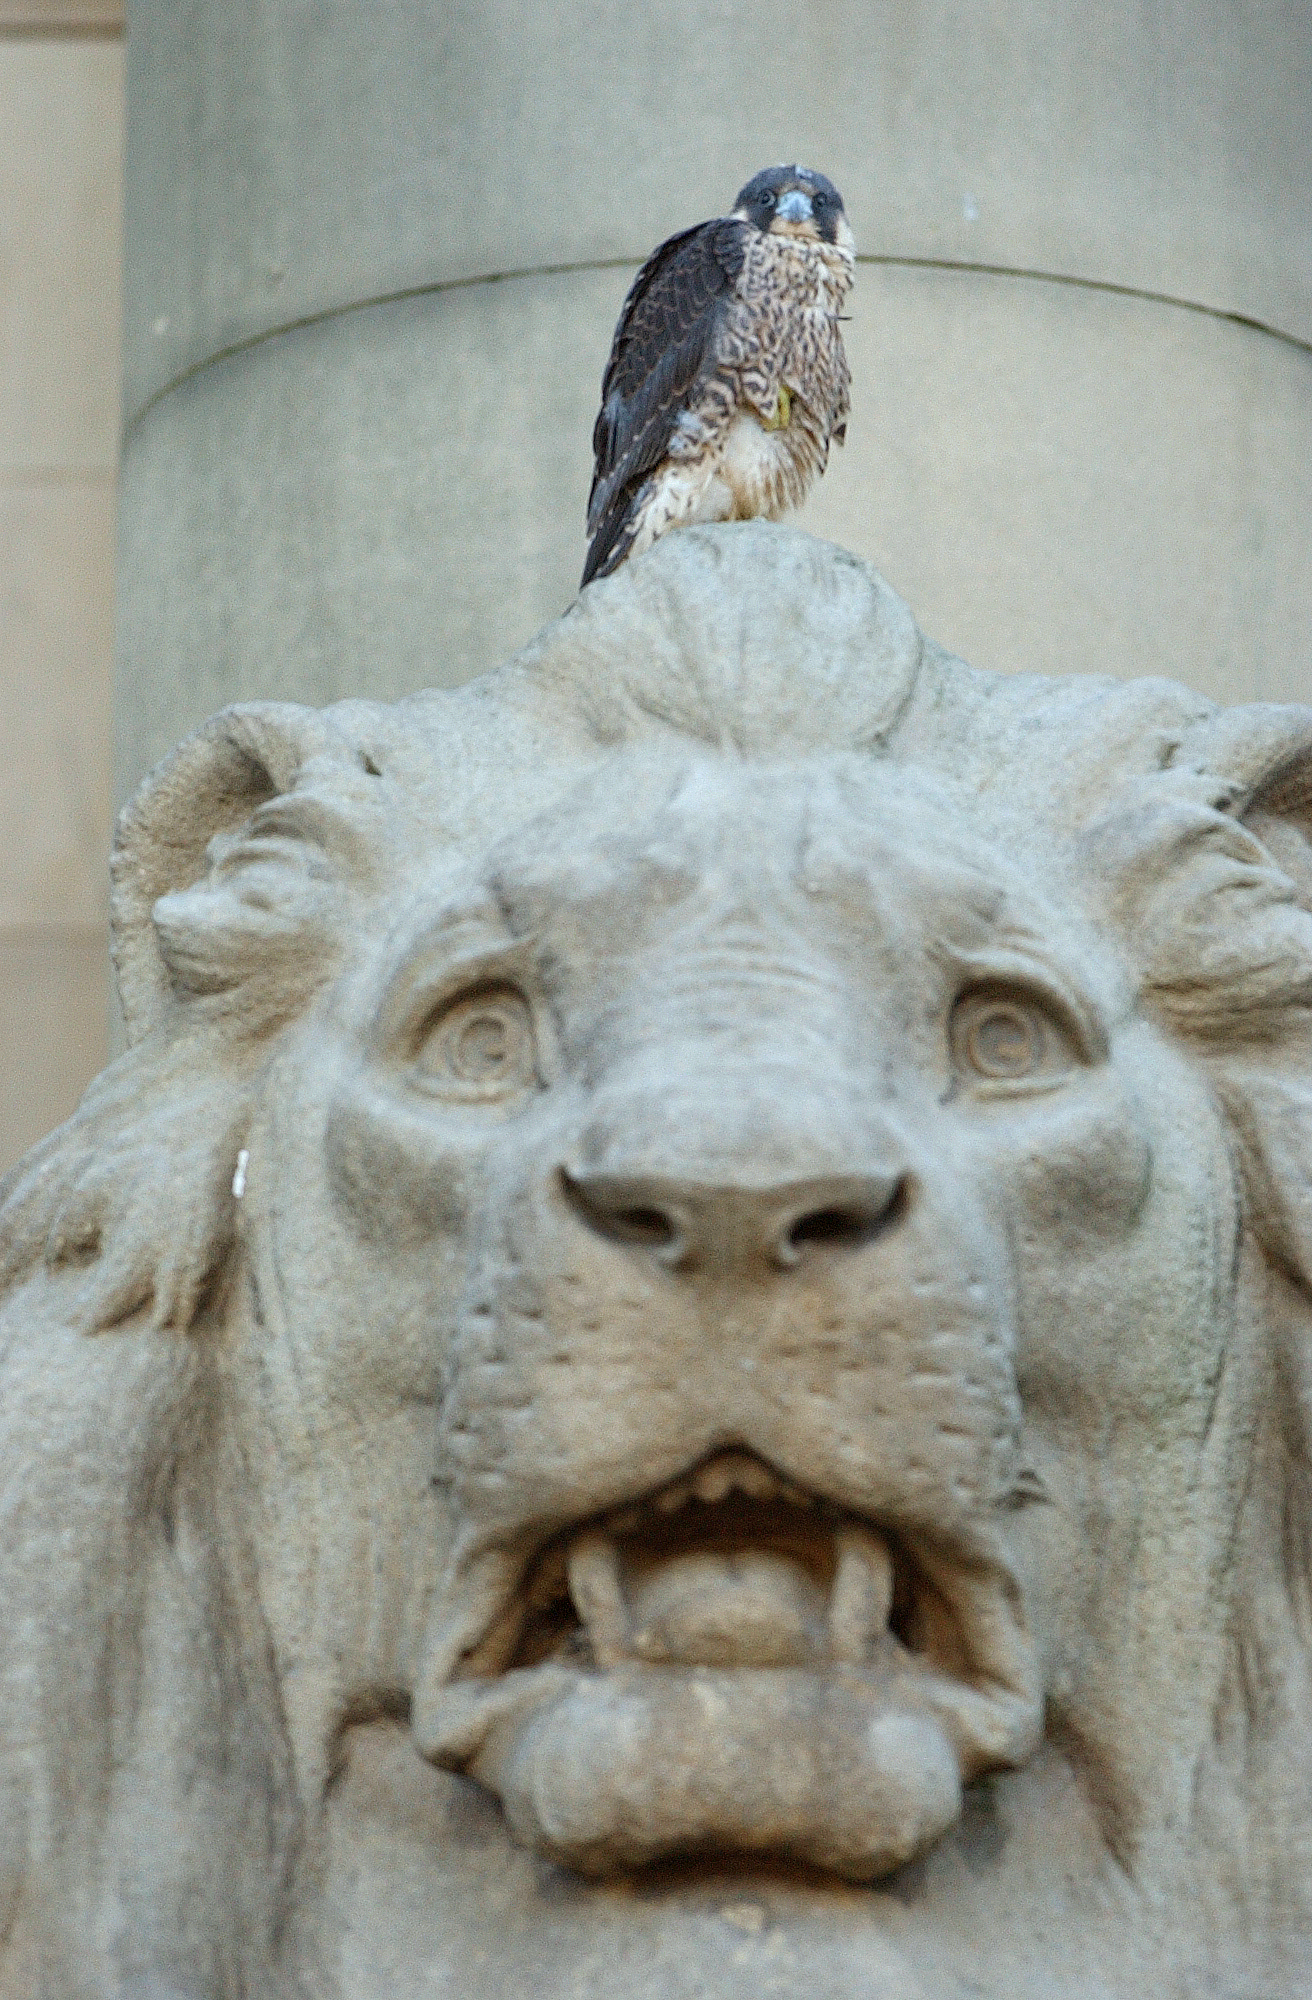 One of the falcons that has made Bolton Town Hall its home